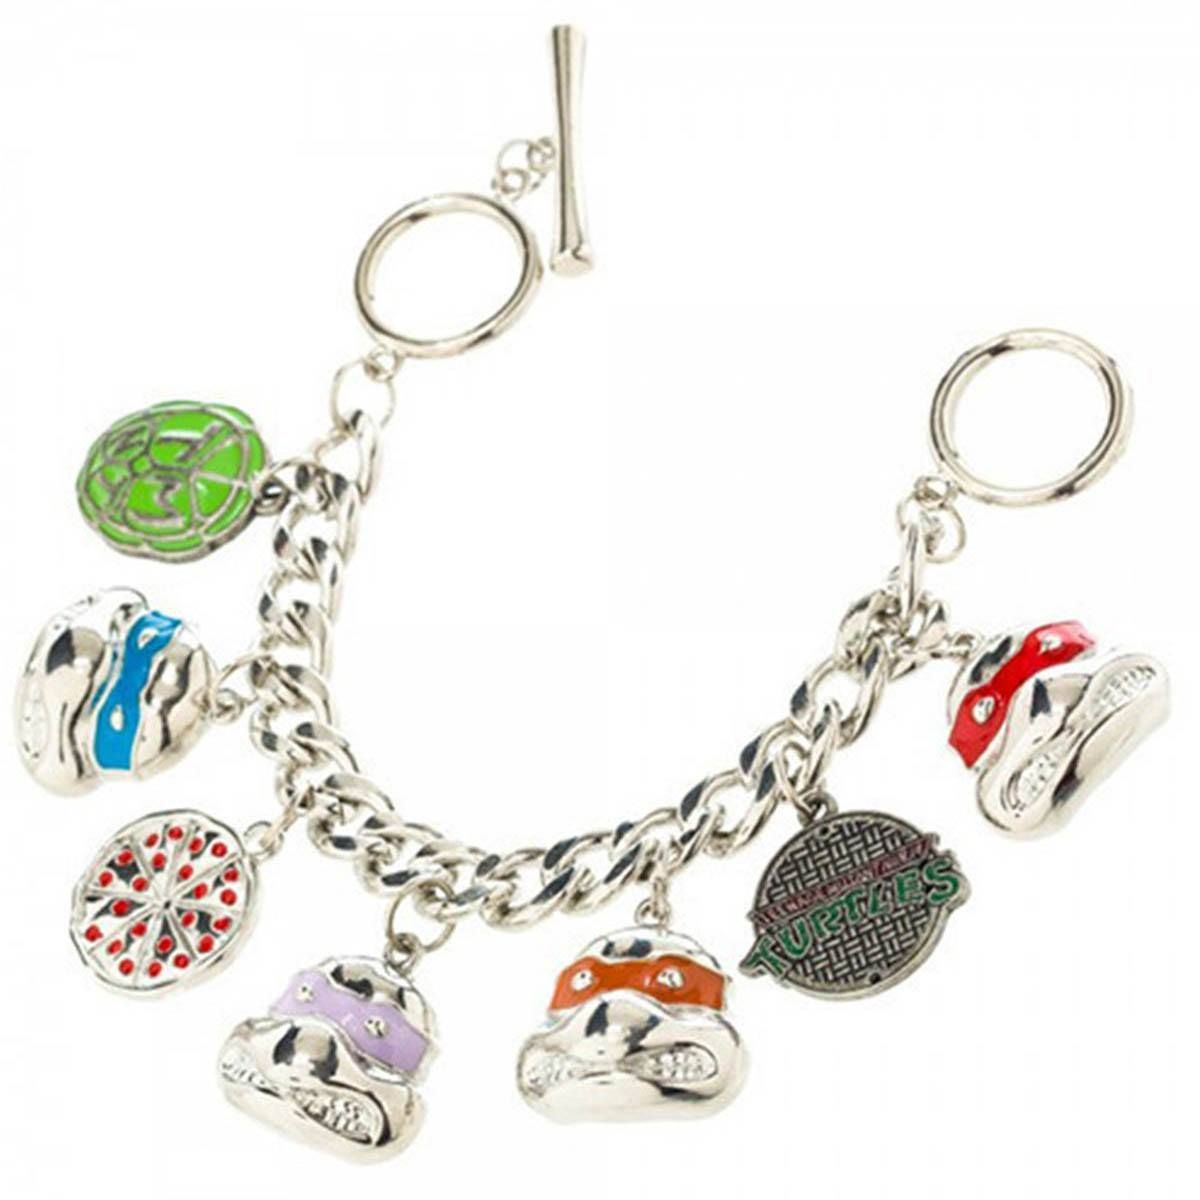 This Teenage Mutant Ninja Turtles Bracelet Has A Cool